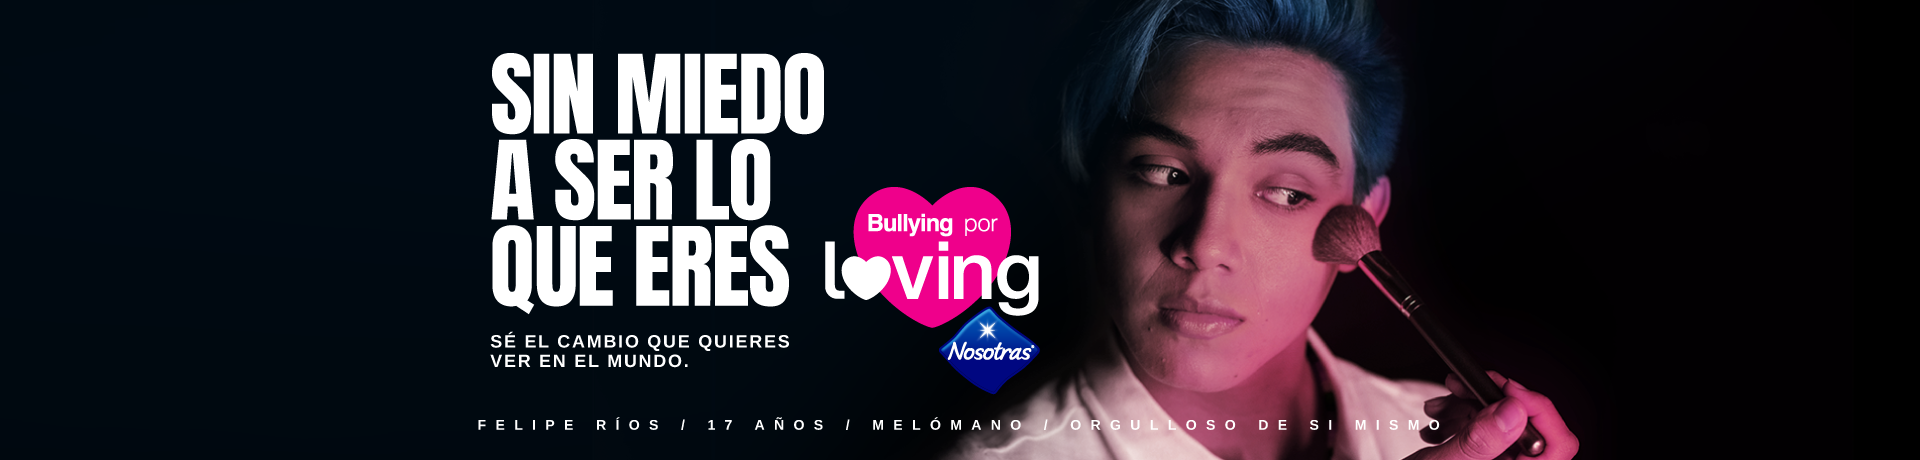 Banner lanzamiento campaña Bullying for Loving